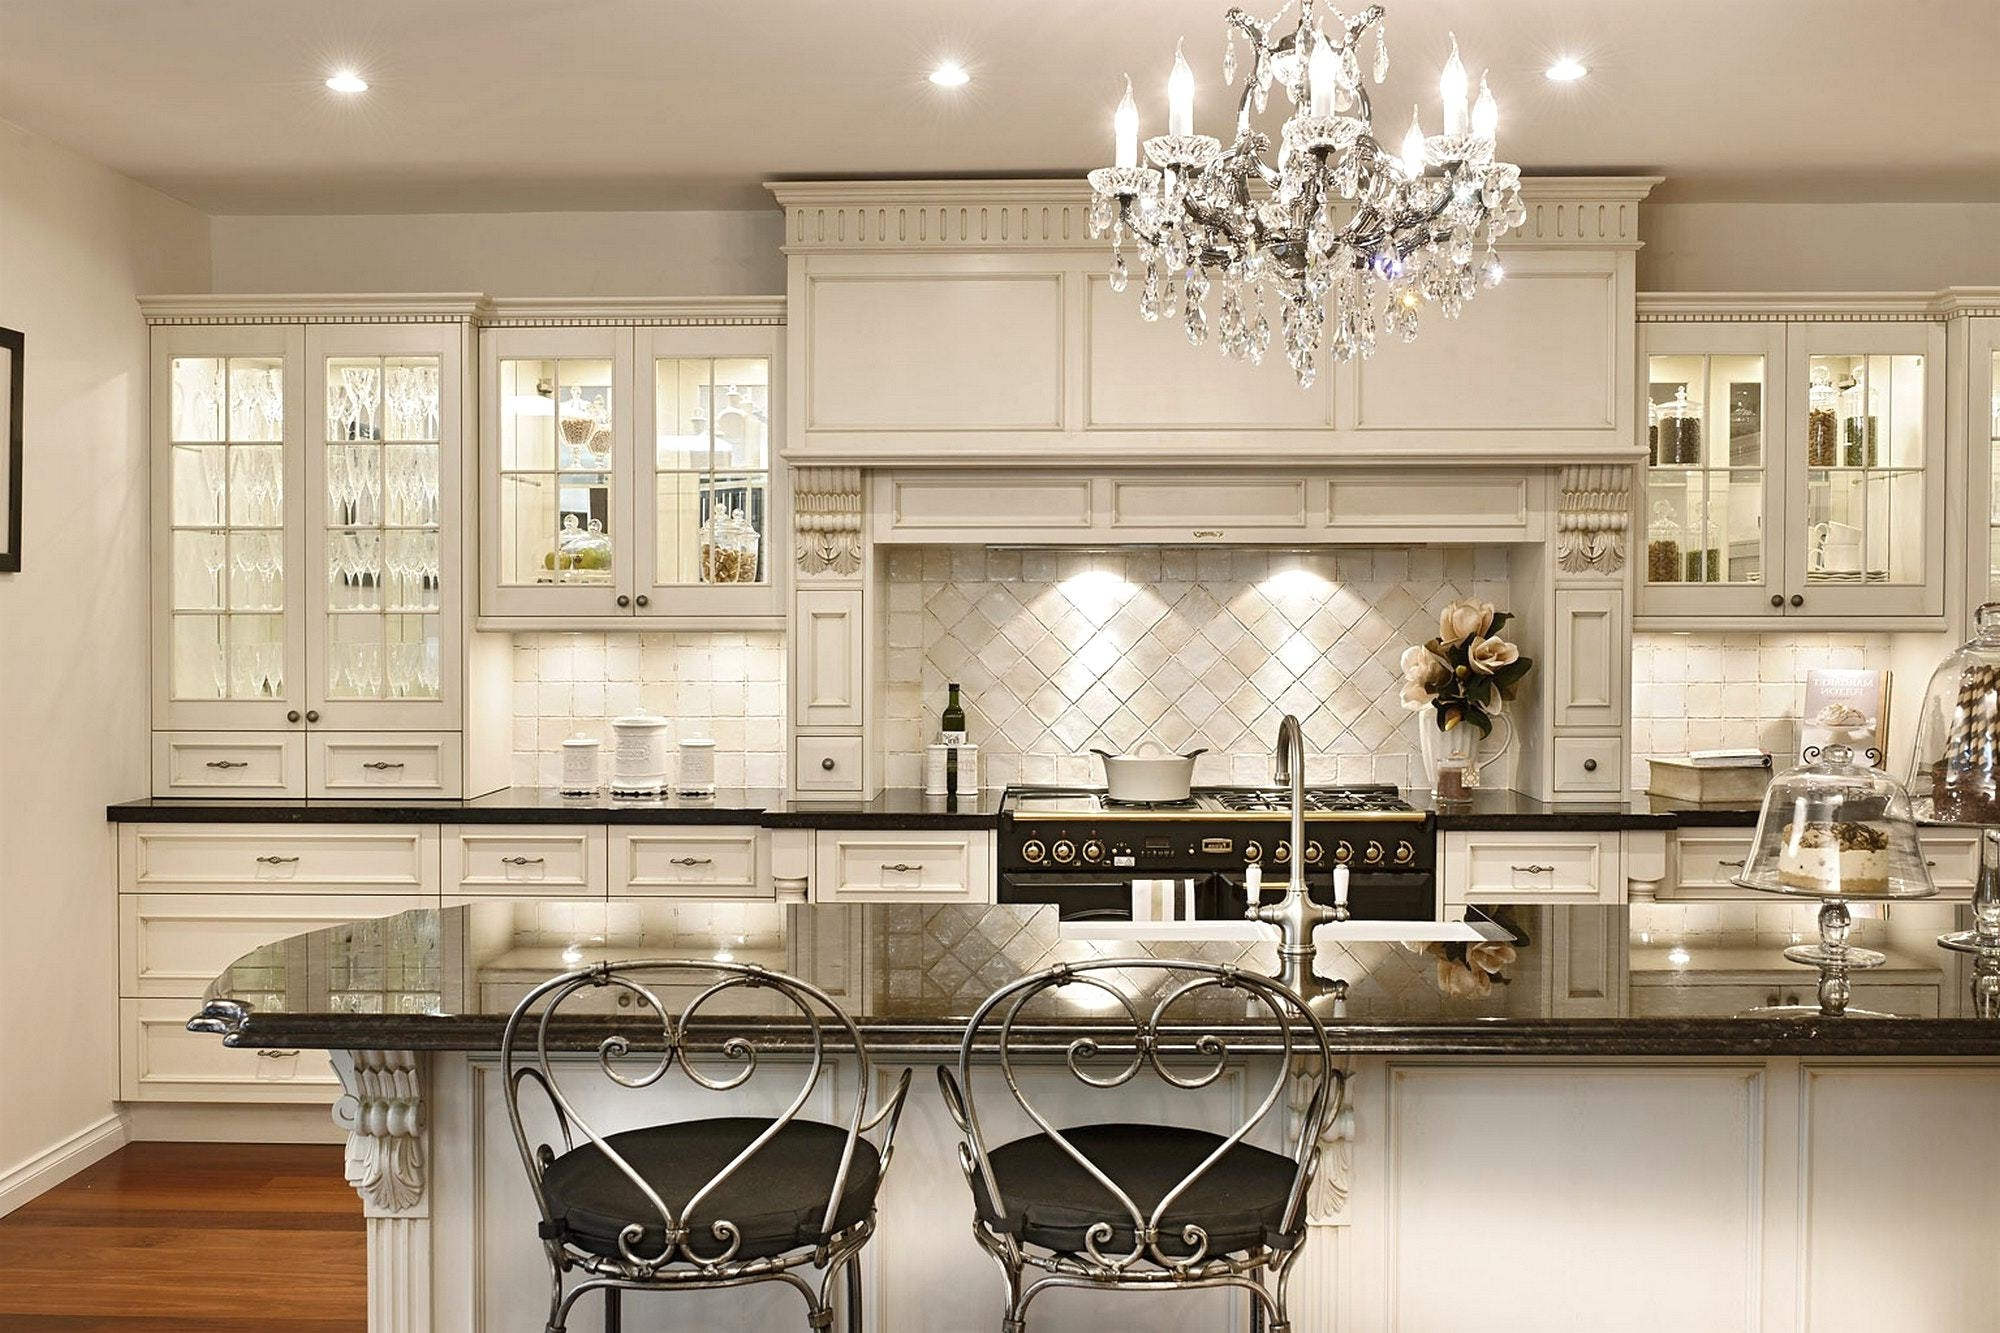 Chandeliers Design : Wonderful French Country Chandeliers Kitchen Pertaining To Newest French Country Chandeliers For Kitchen (View 4 of 20)